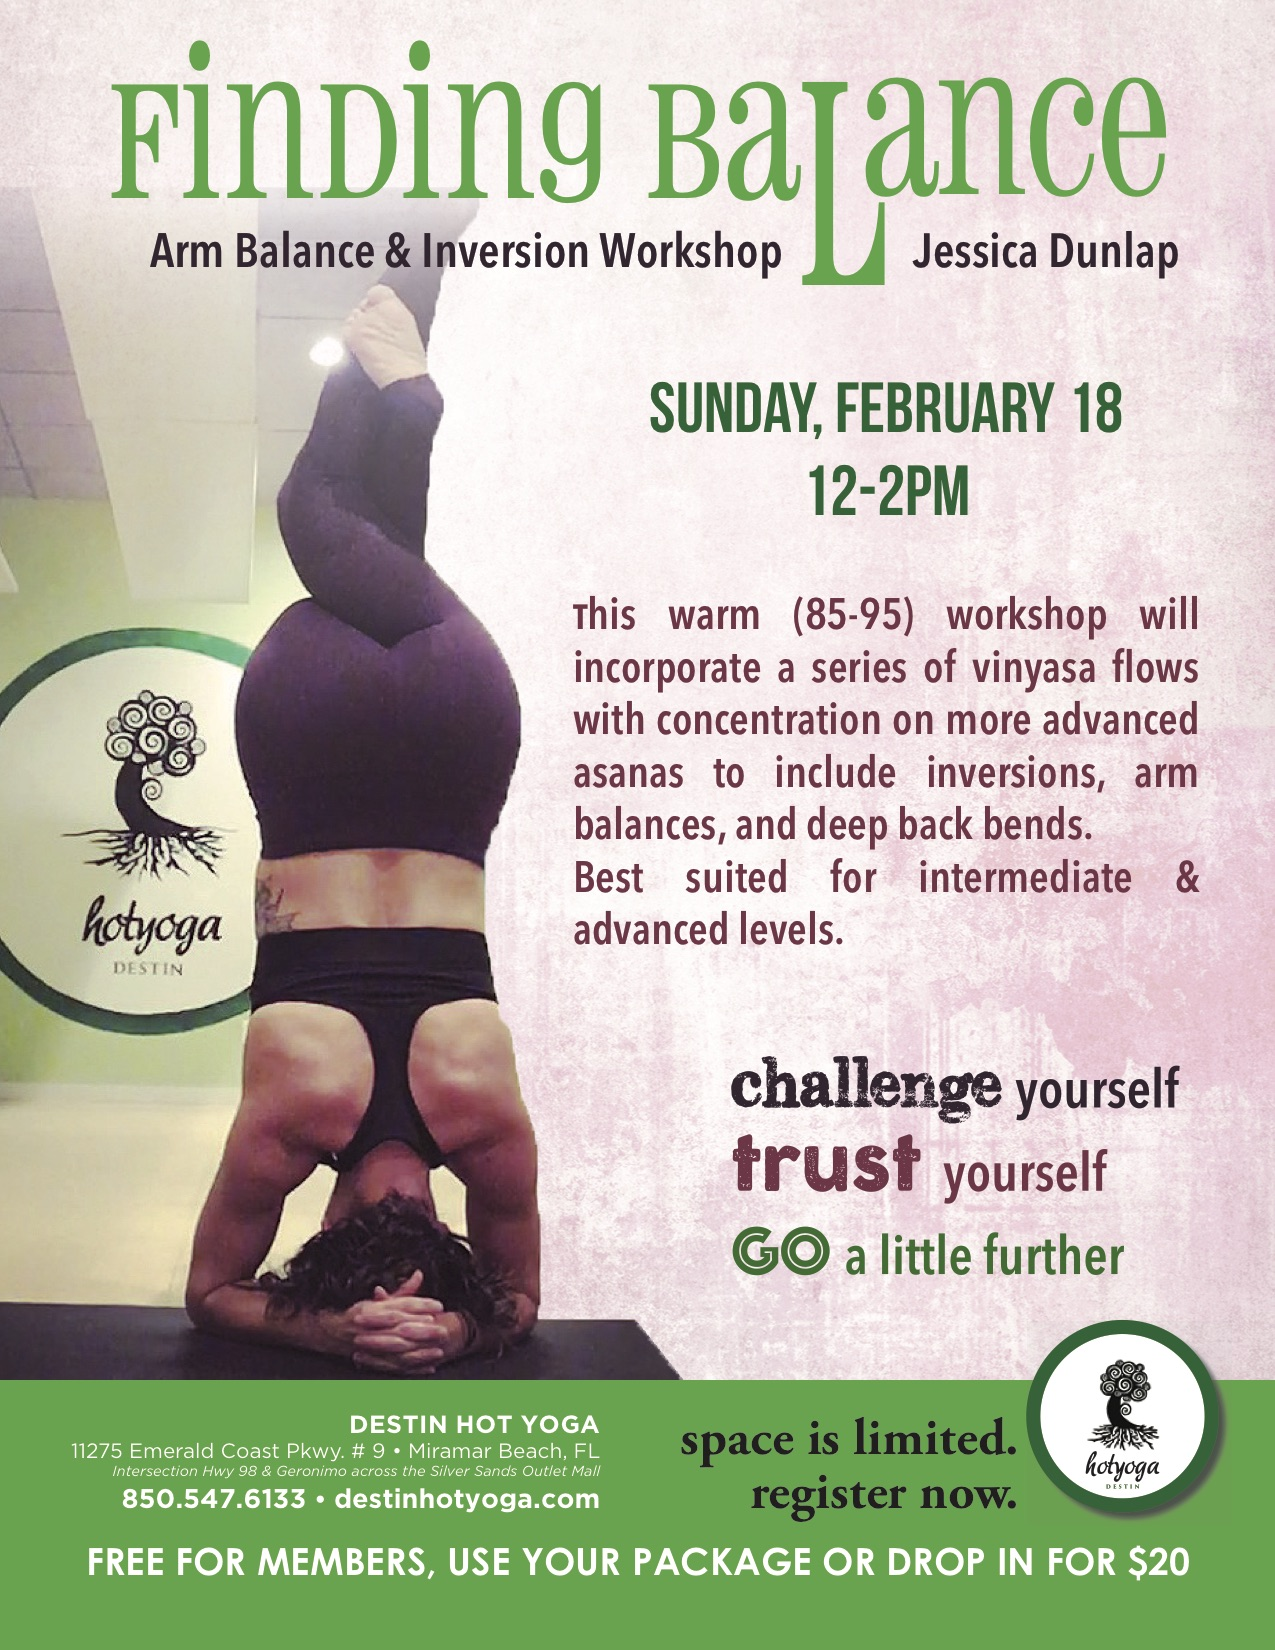 Arm Balance Amp Inversion Workshop Is This Sunday